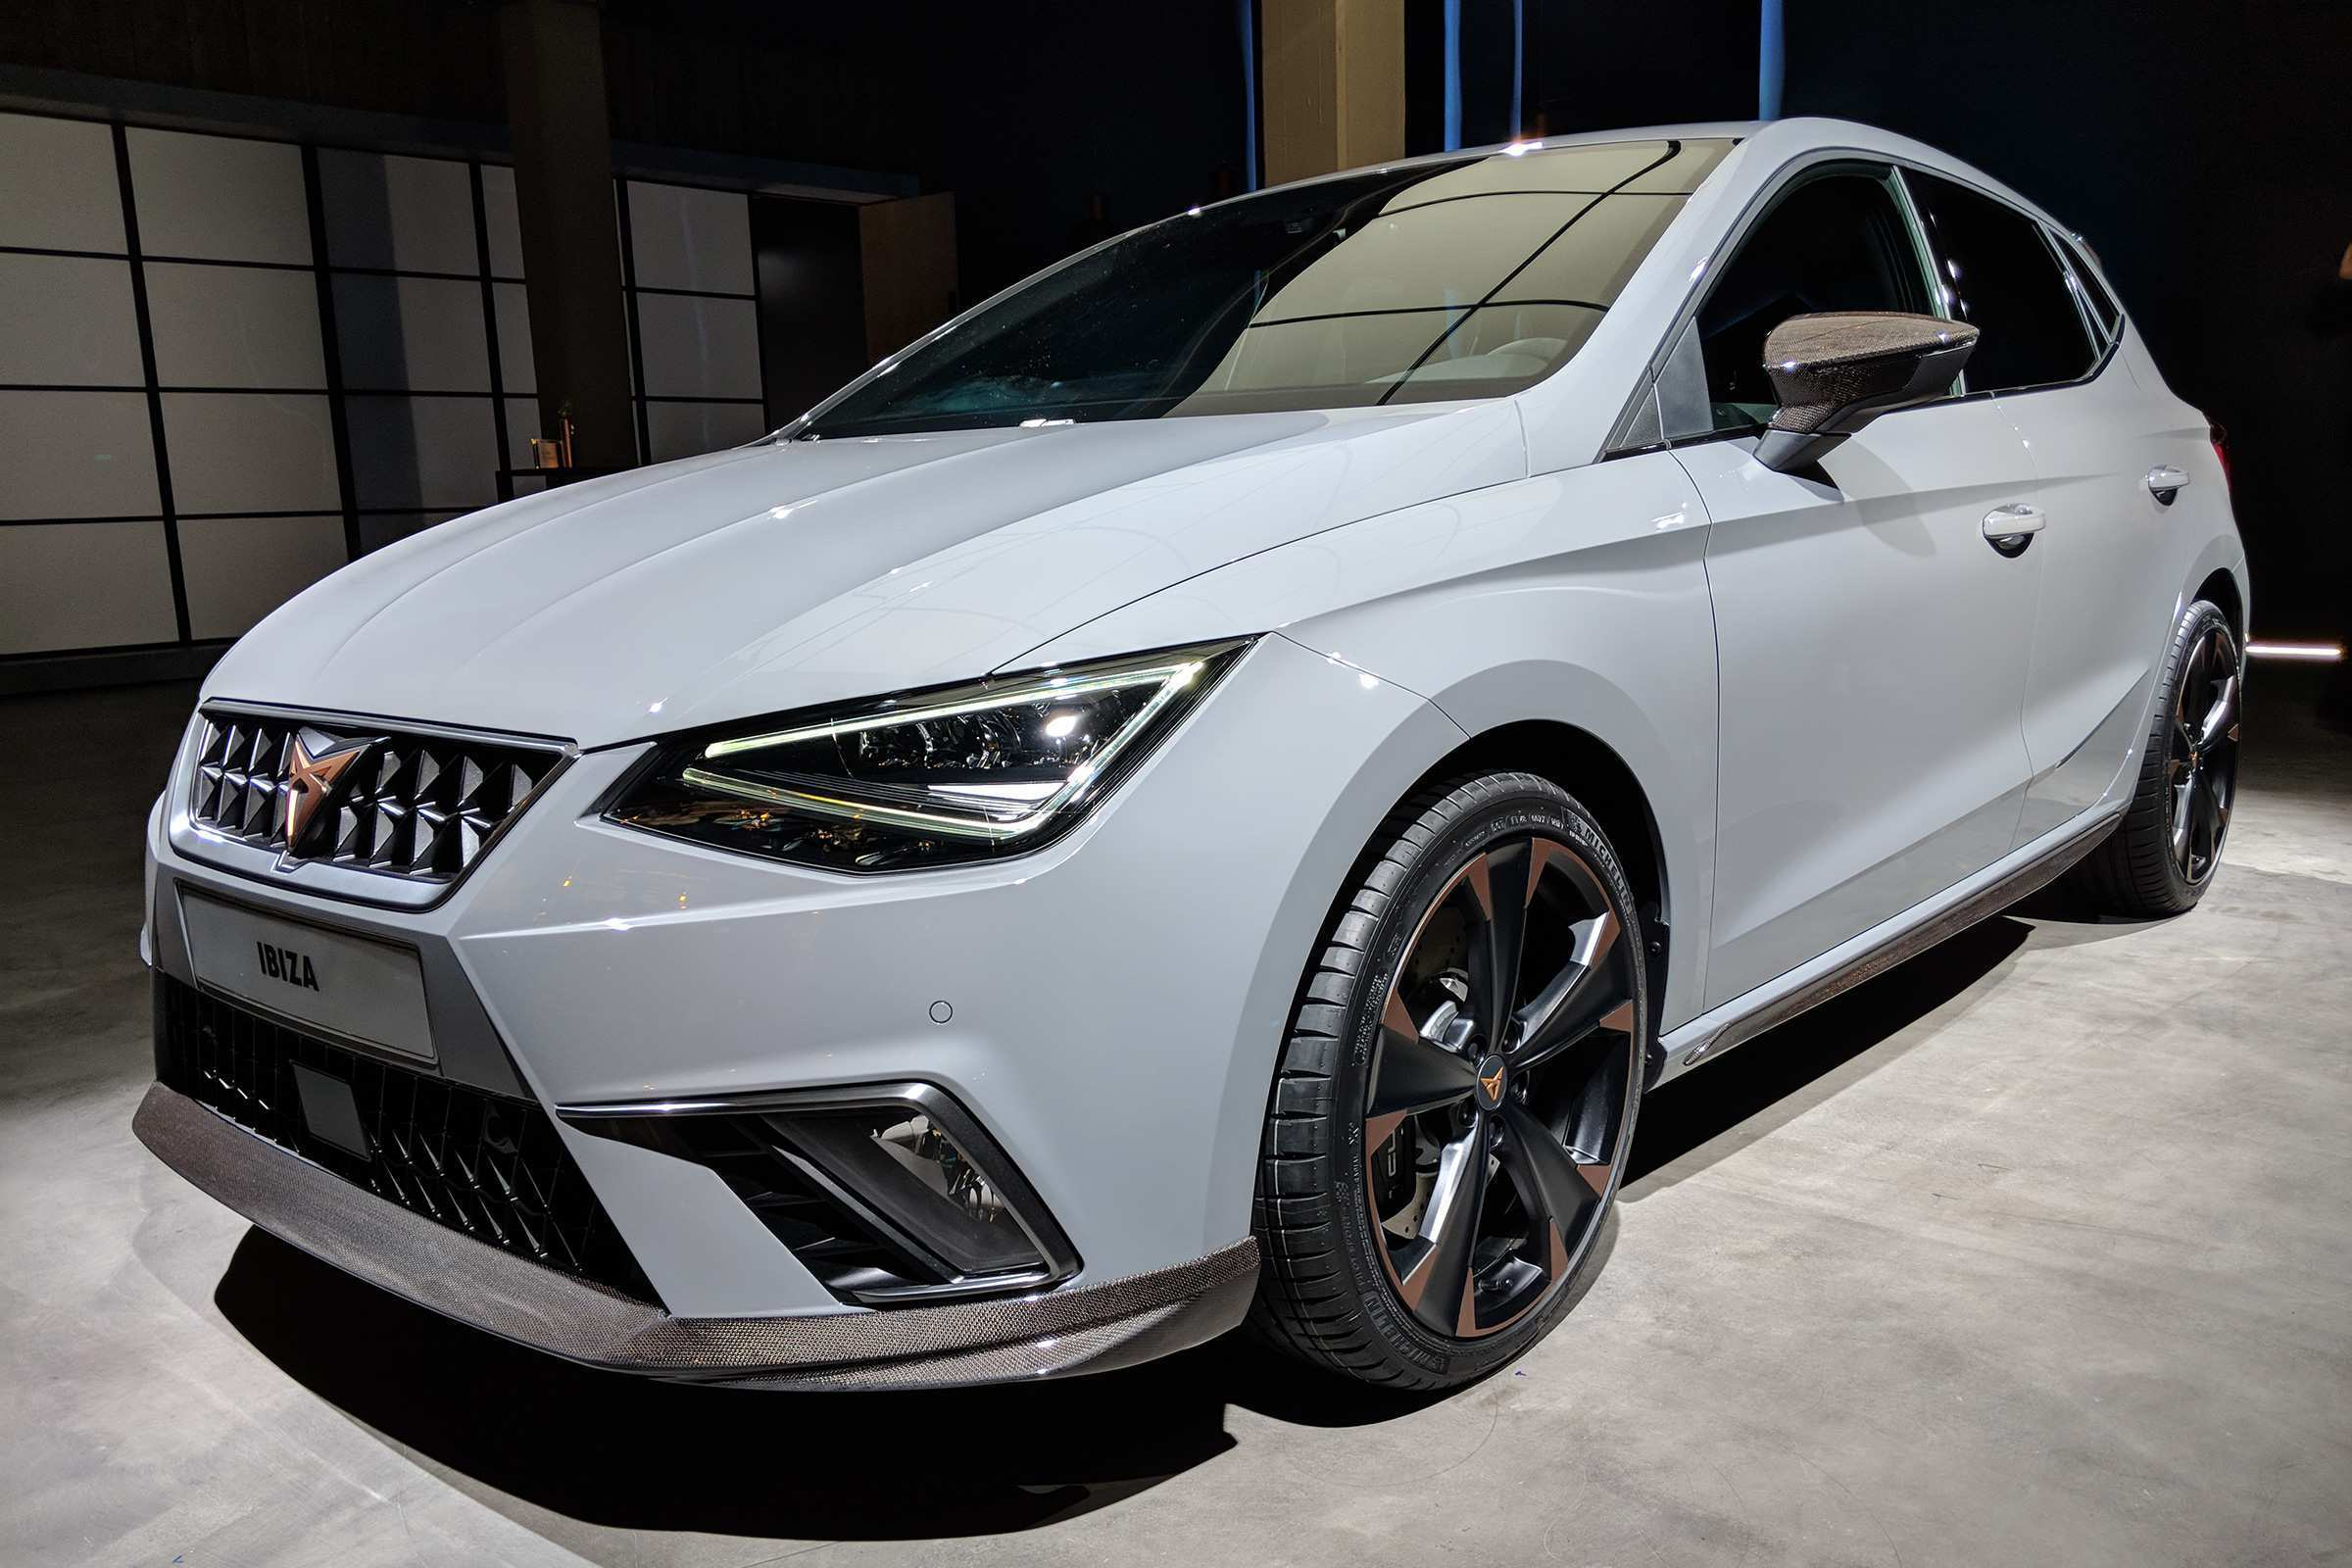 33 New 2020 Seat Ibiza Configurations with 2020 Seat Ibiza